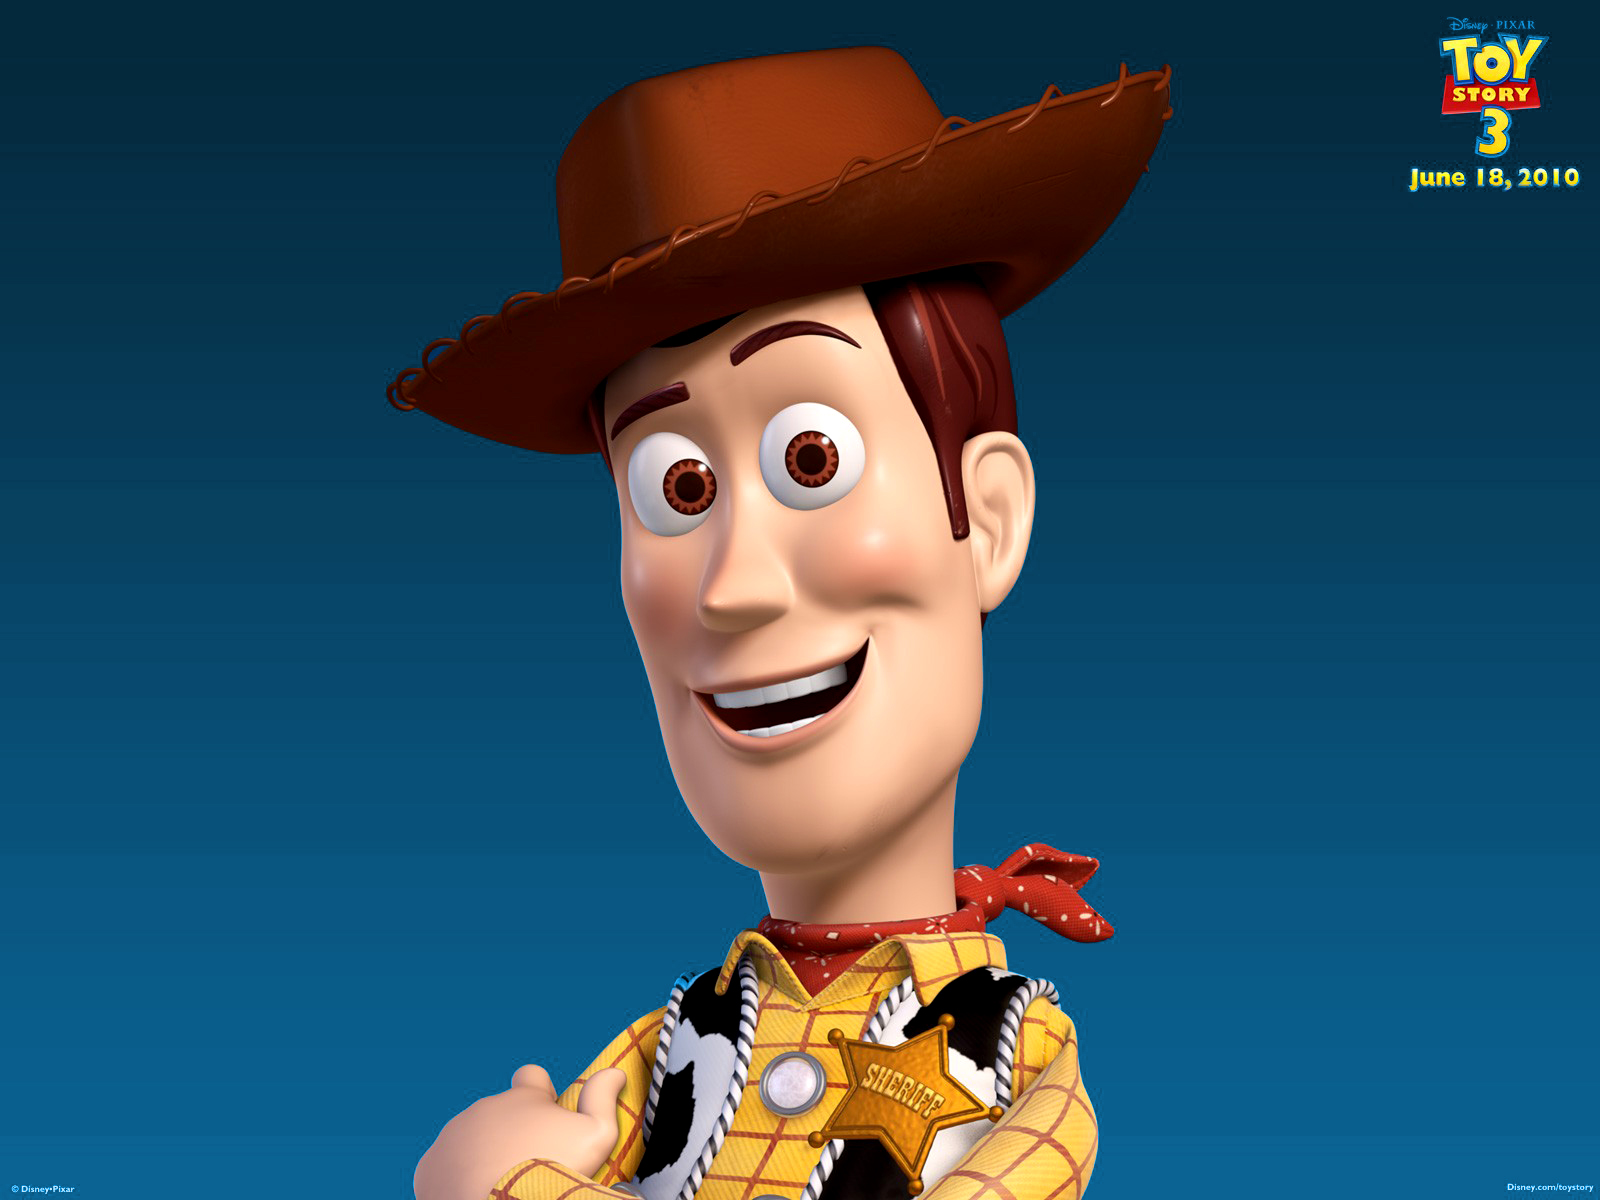 Woody Toy Story 3 Games : Toy story hd wallpaper posters desktop wallpapers